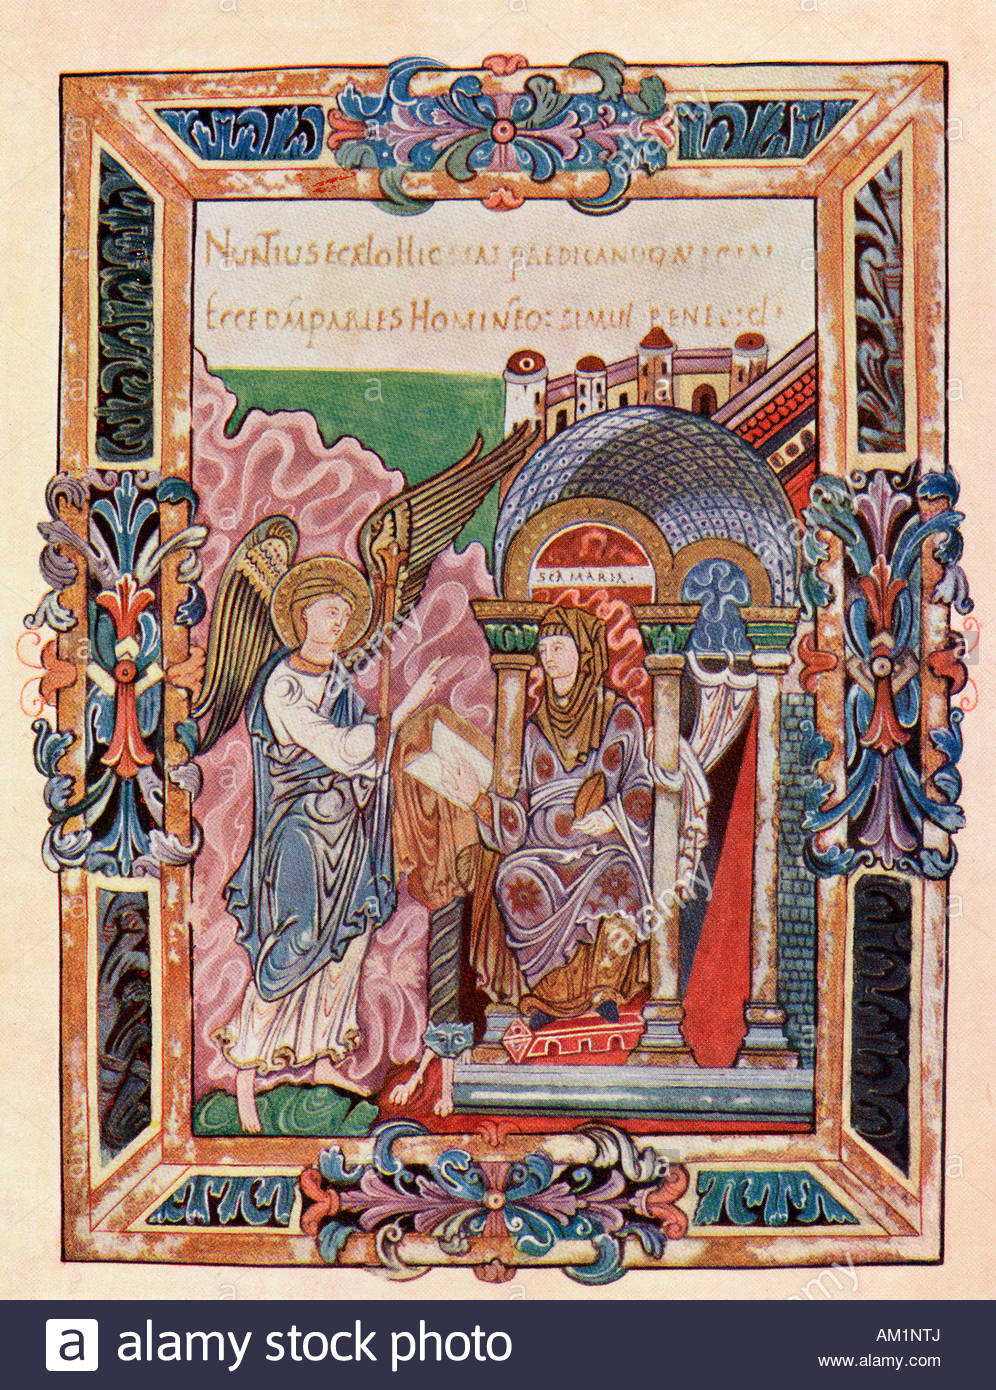 Facsimile of a page from the Ethelwold Benedictional showing the  Annunciation